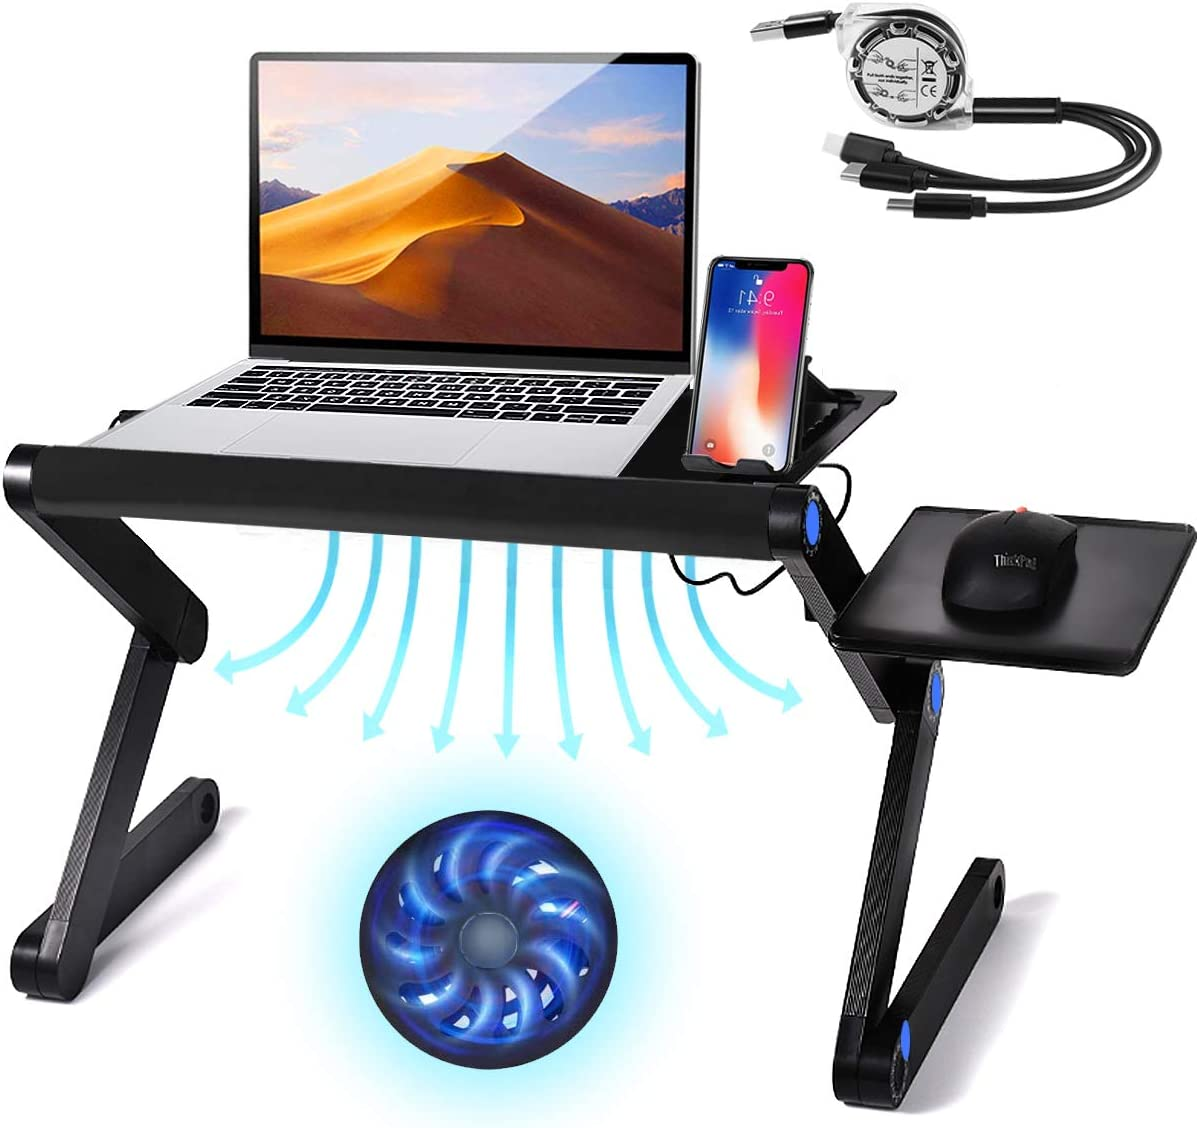 Upgraded Sturdy Large Laptop Stand, Adjustable Laptop Stand for Desk, Aluminum Laptop Table Laptop Desk Stand, Protable Laptop Holder with Cooling Fan and Mouse Pad Compatible Up to 17.3'' Laptop